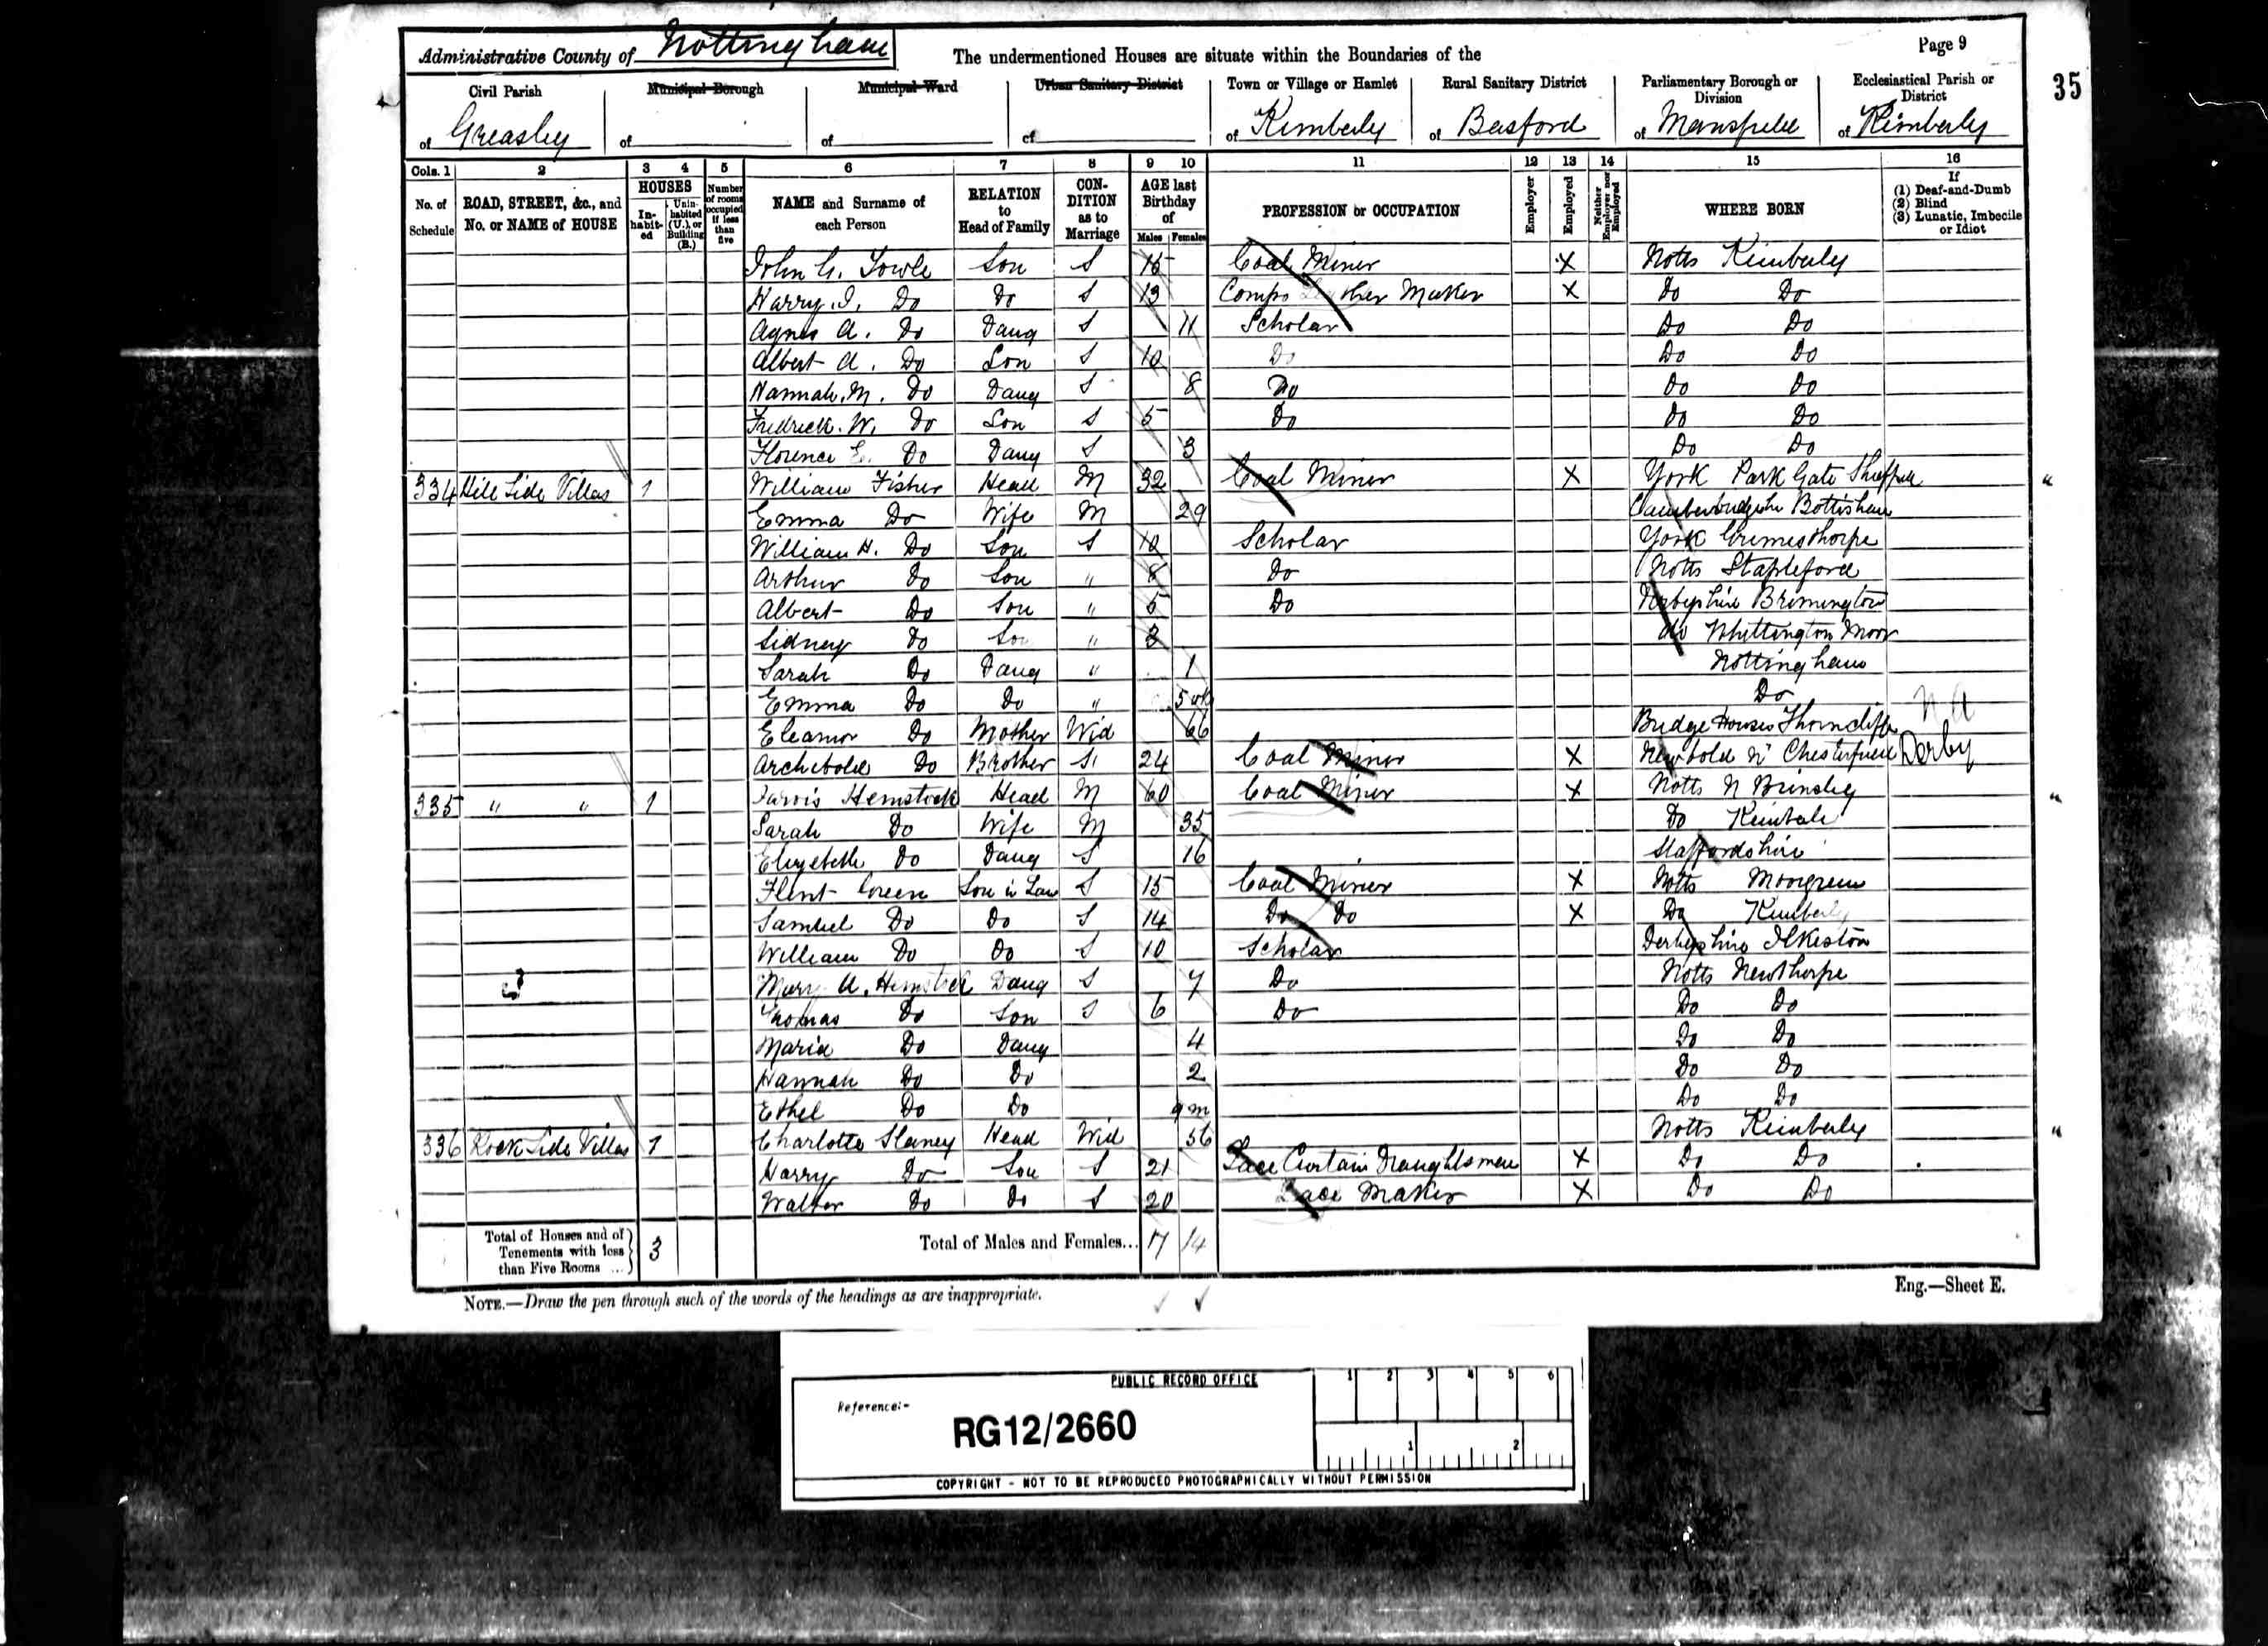 1891 England Census Record for William Fisher